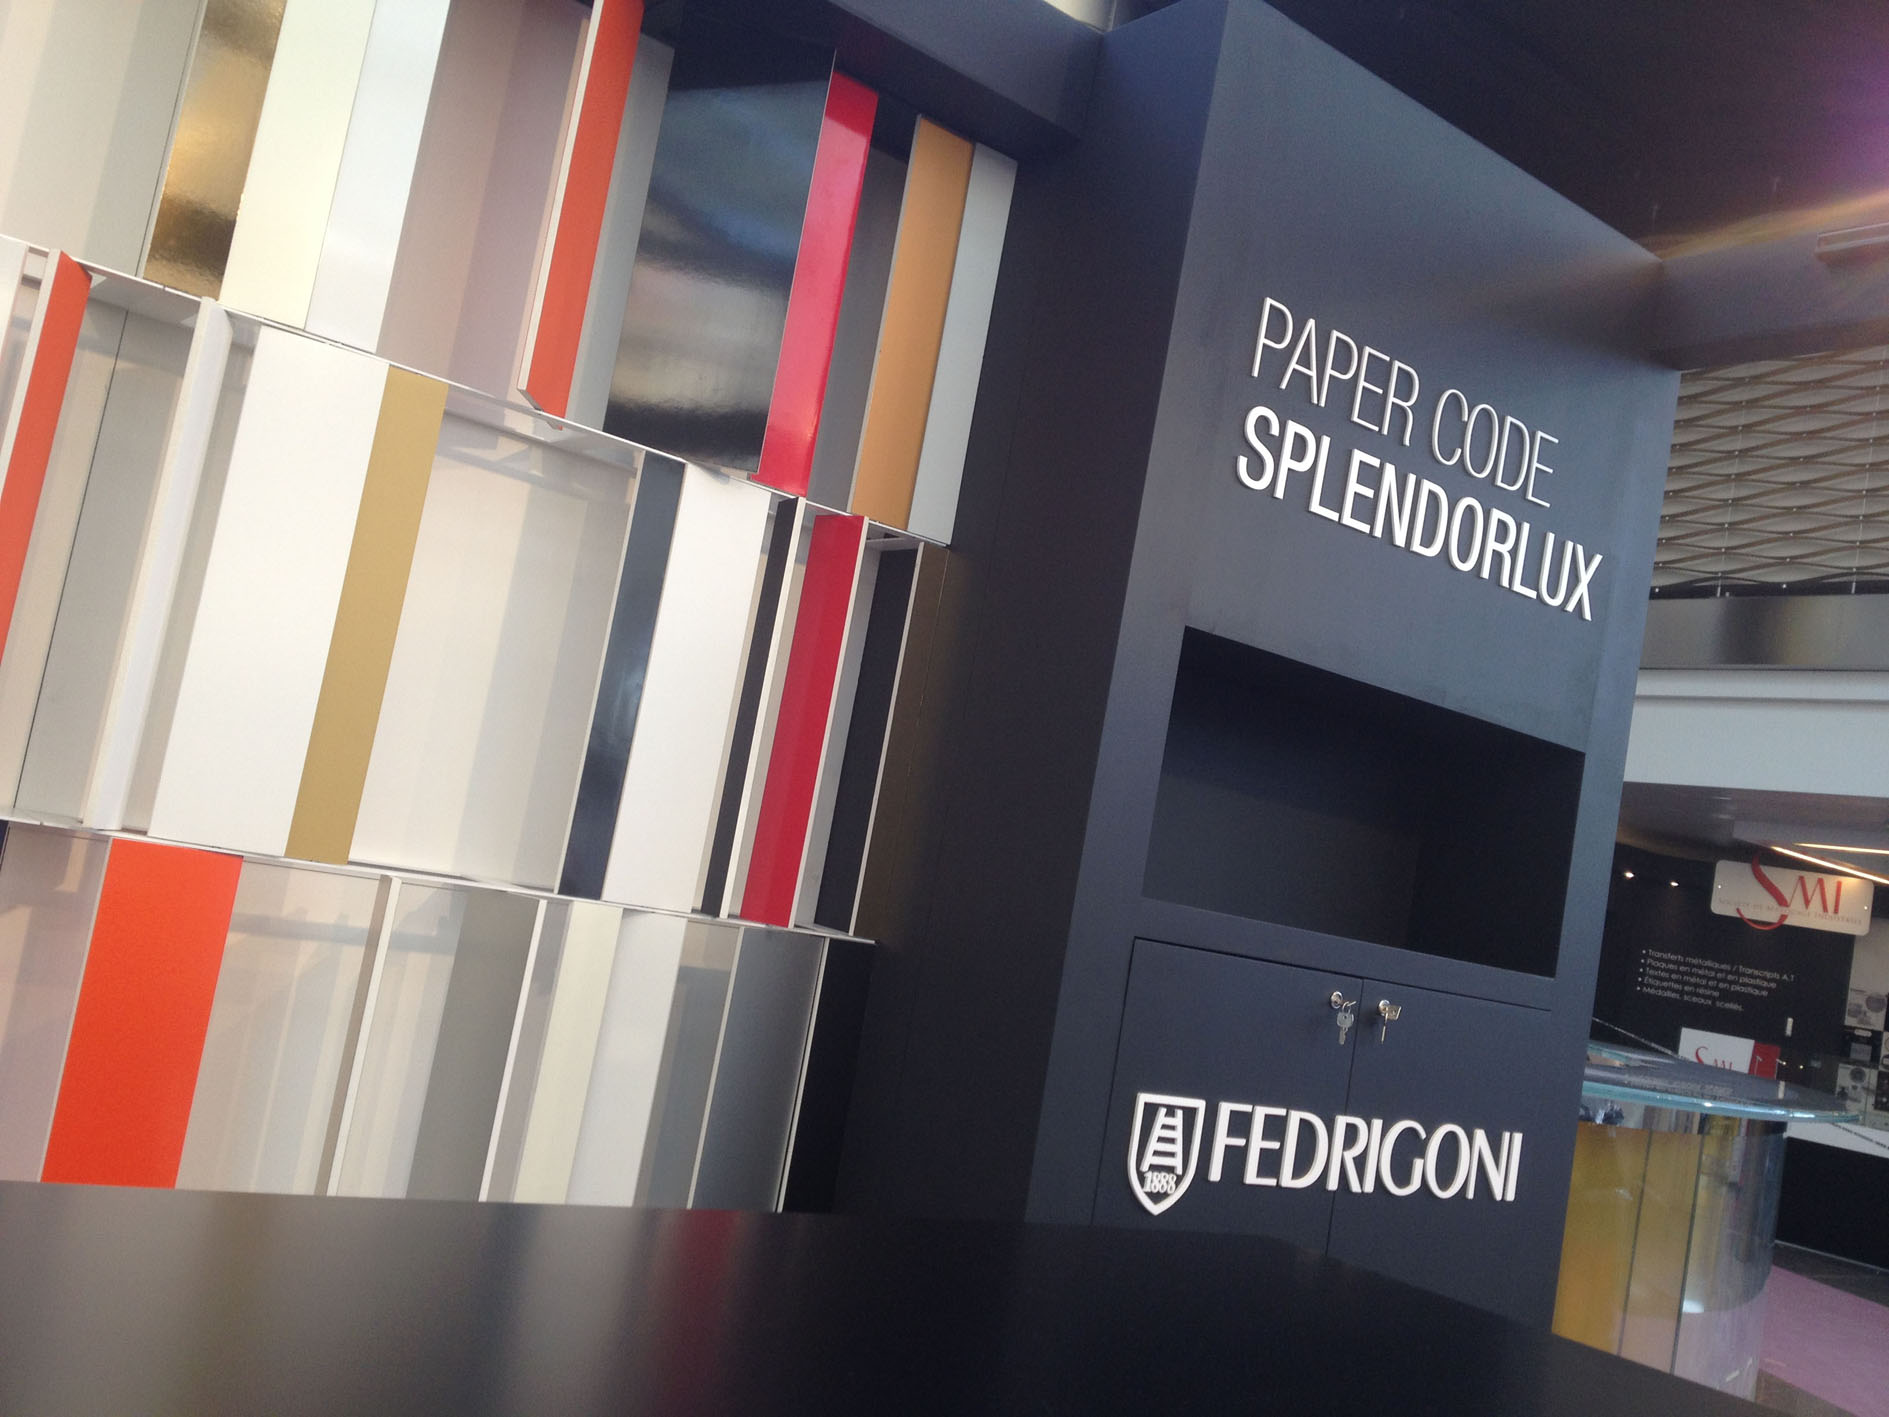 Fedrigoni Papers Splendorlux collection stand LuxePack Montecarlo design project 04